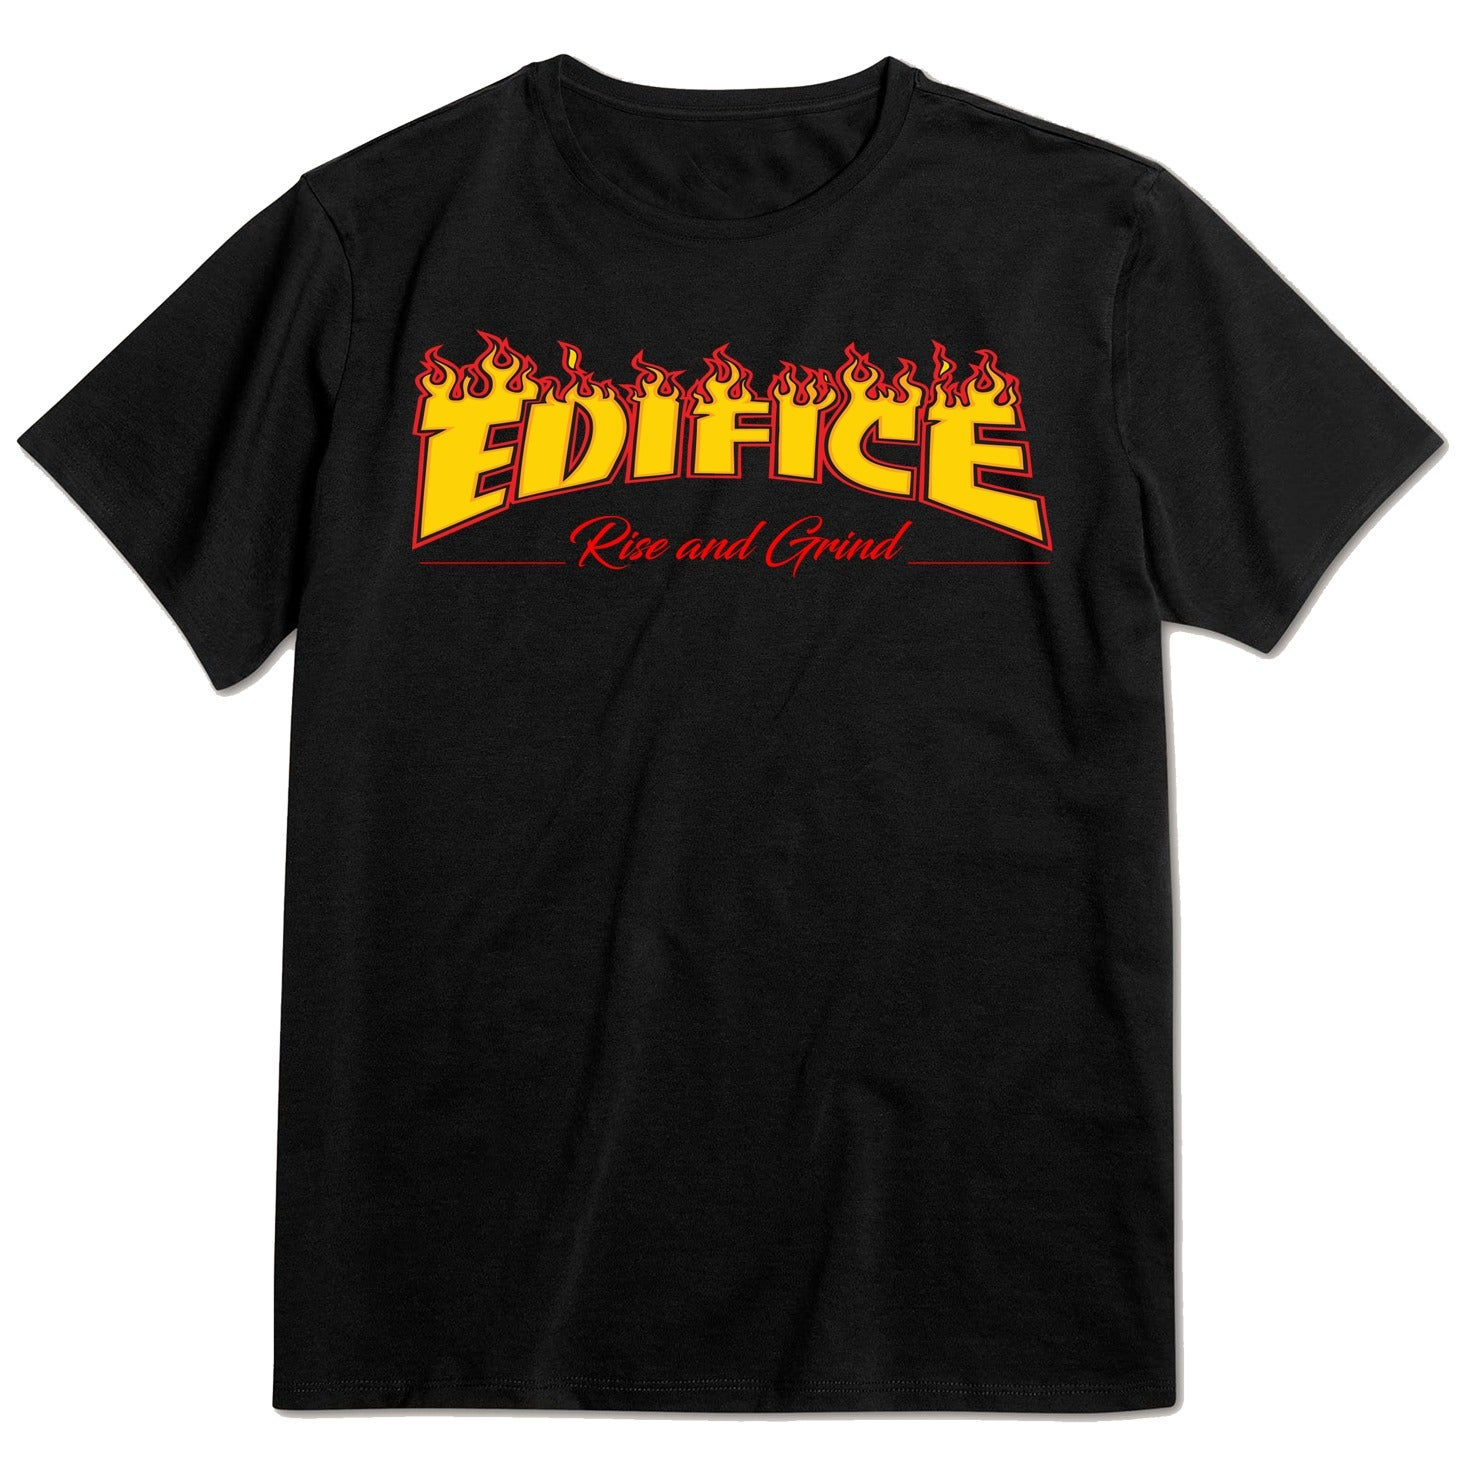 Image of EDIFICE RISE AND GRIND FIREMAN TEE 3 COLOR HAND PRINTED ON BLACK SHORT SLEEVE SM-XXL